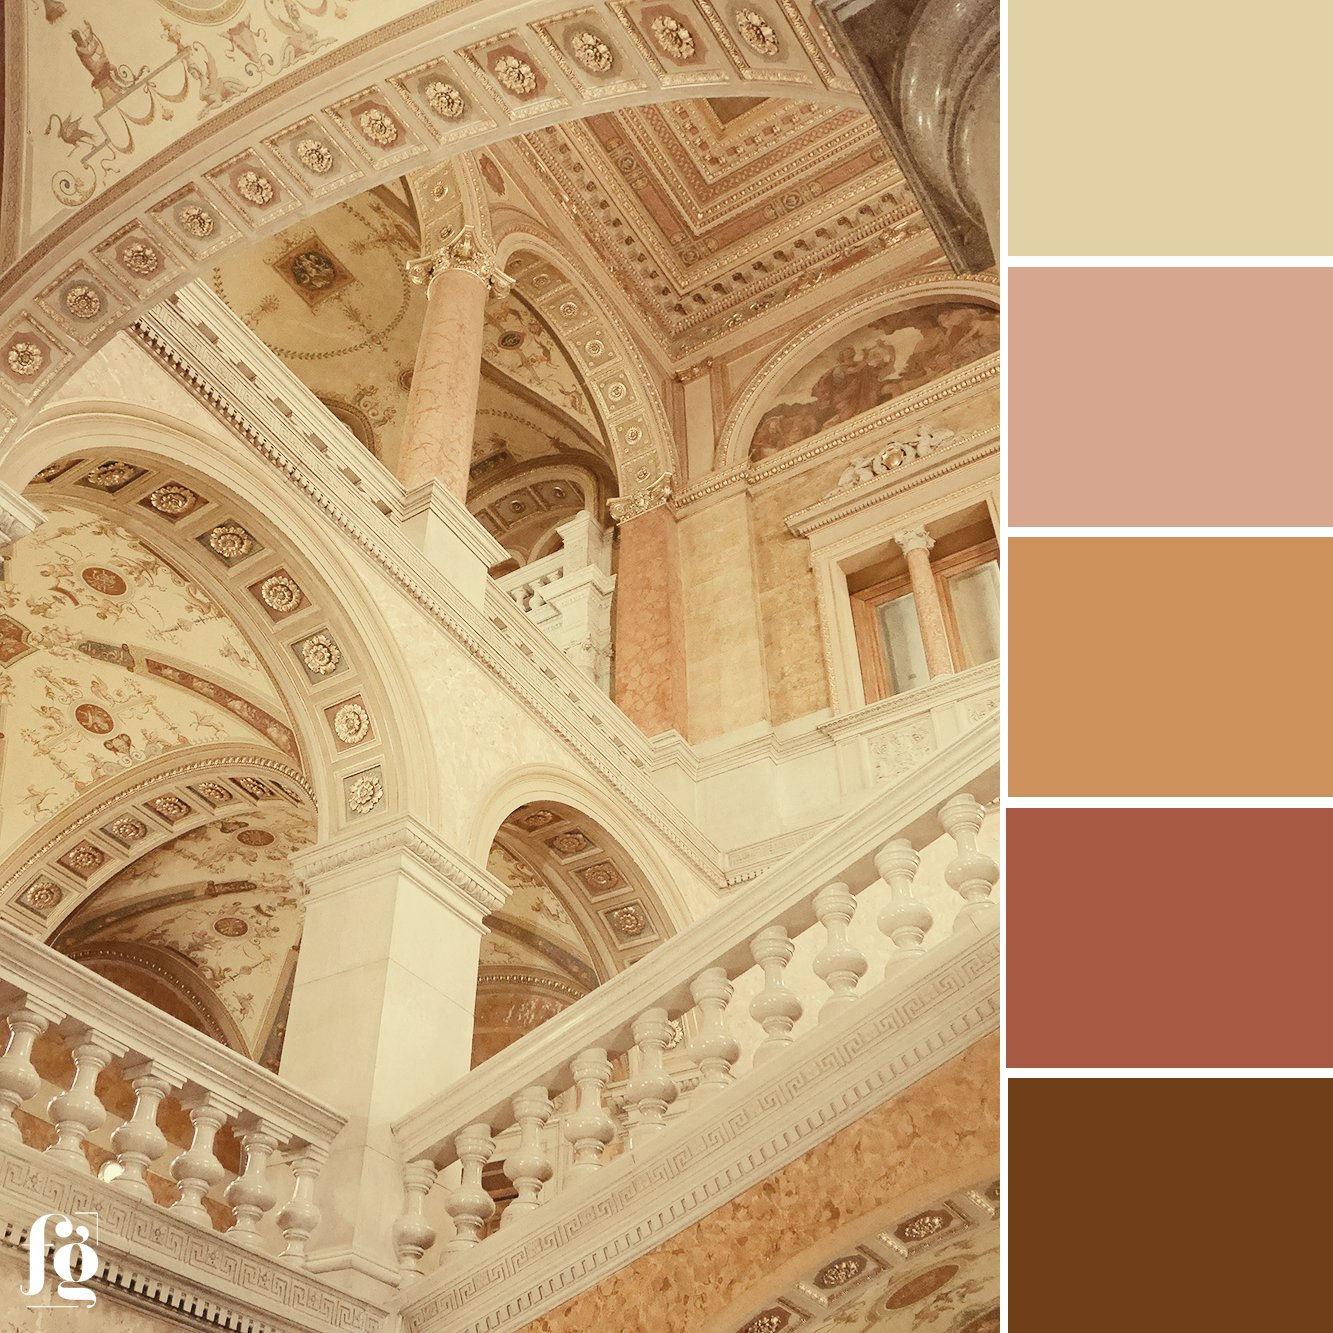 warm pinks and ochres from the Hungarian State Opera House